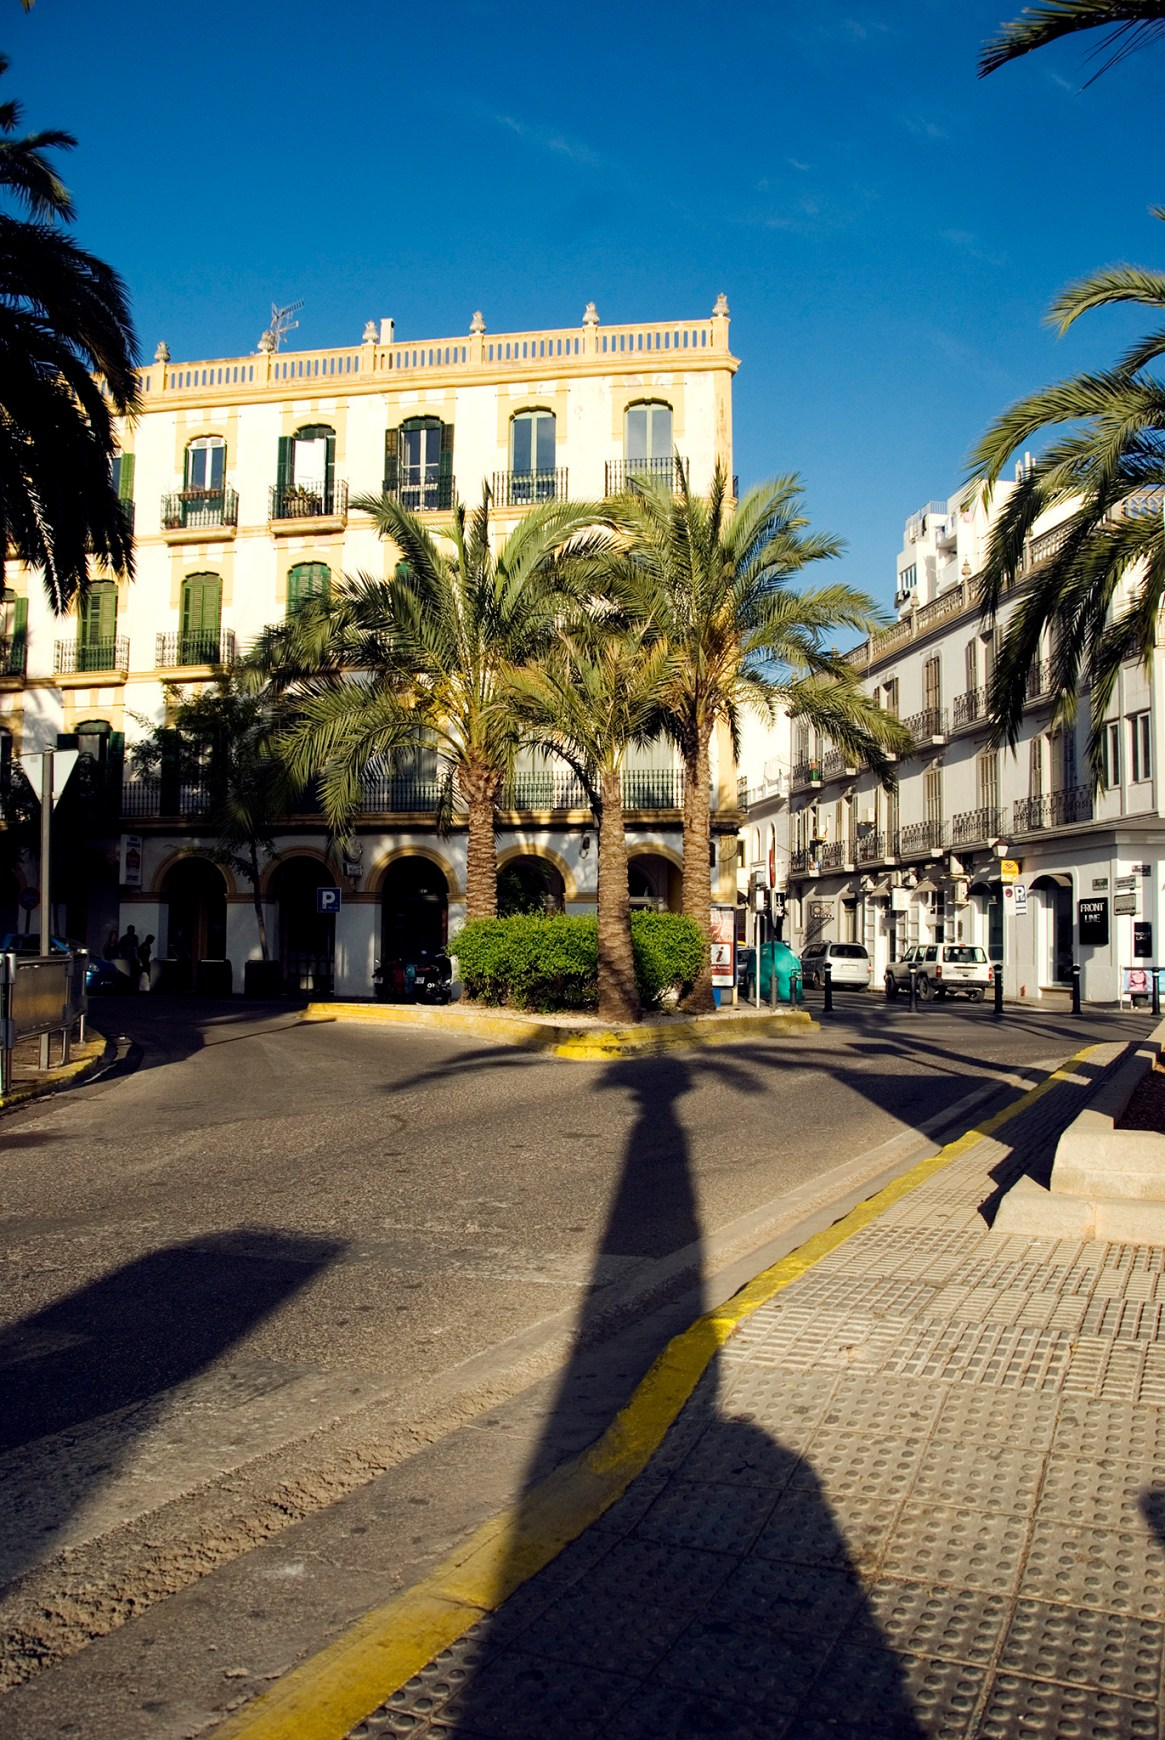 Piazza with palm trees and old buildings